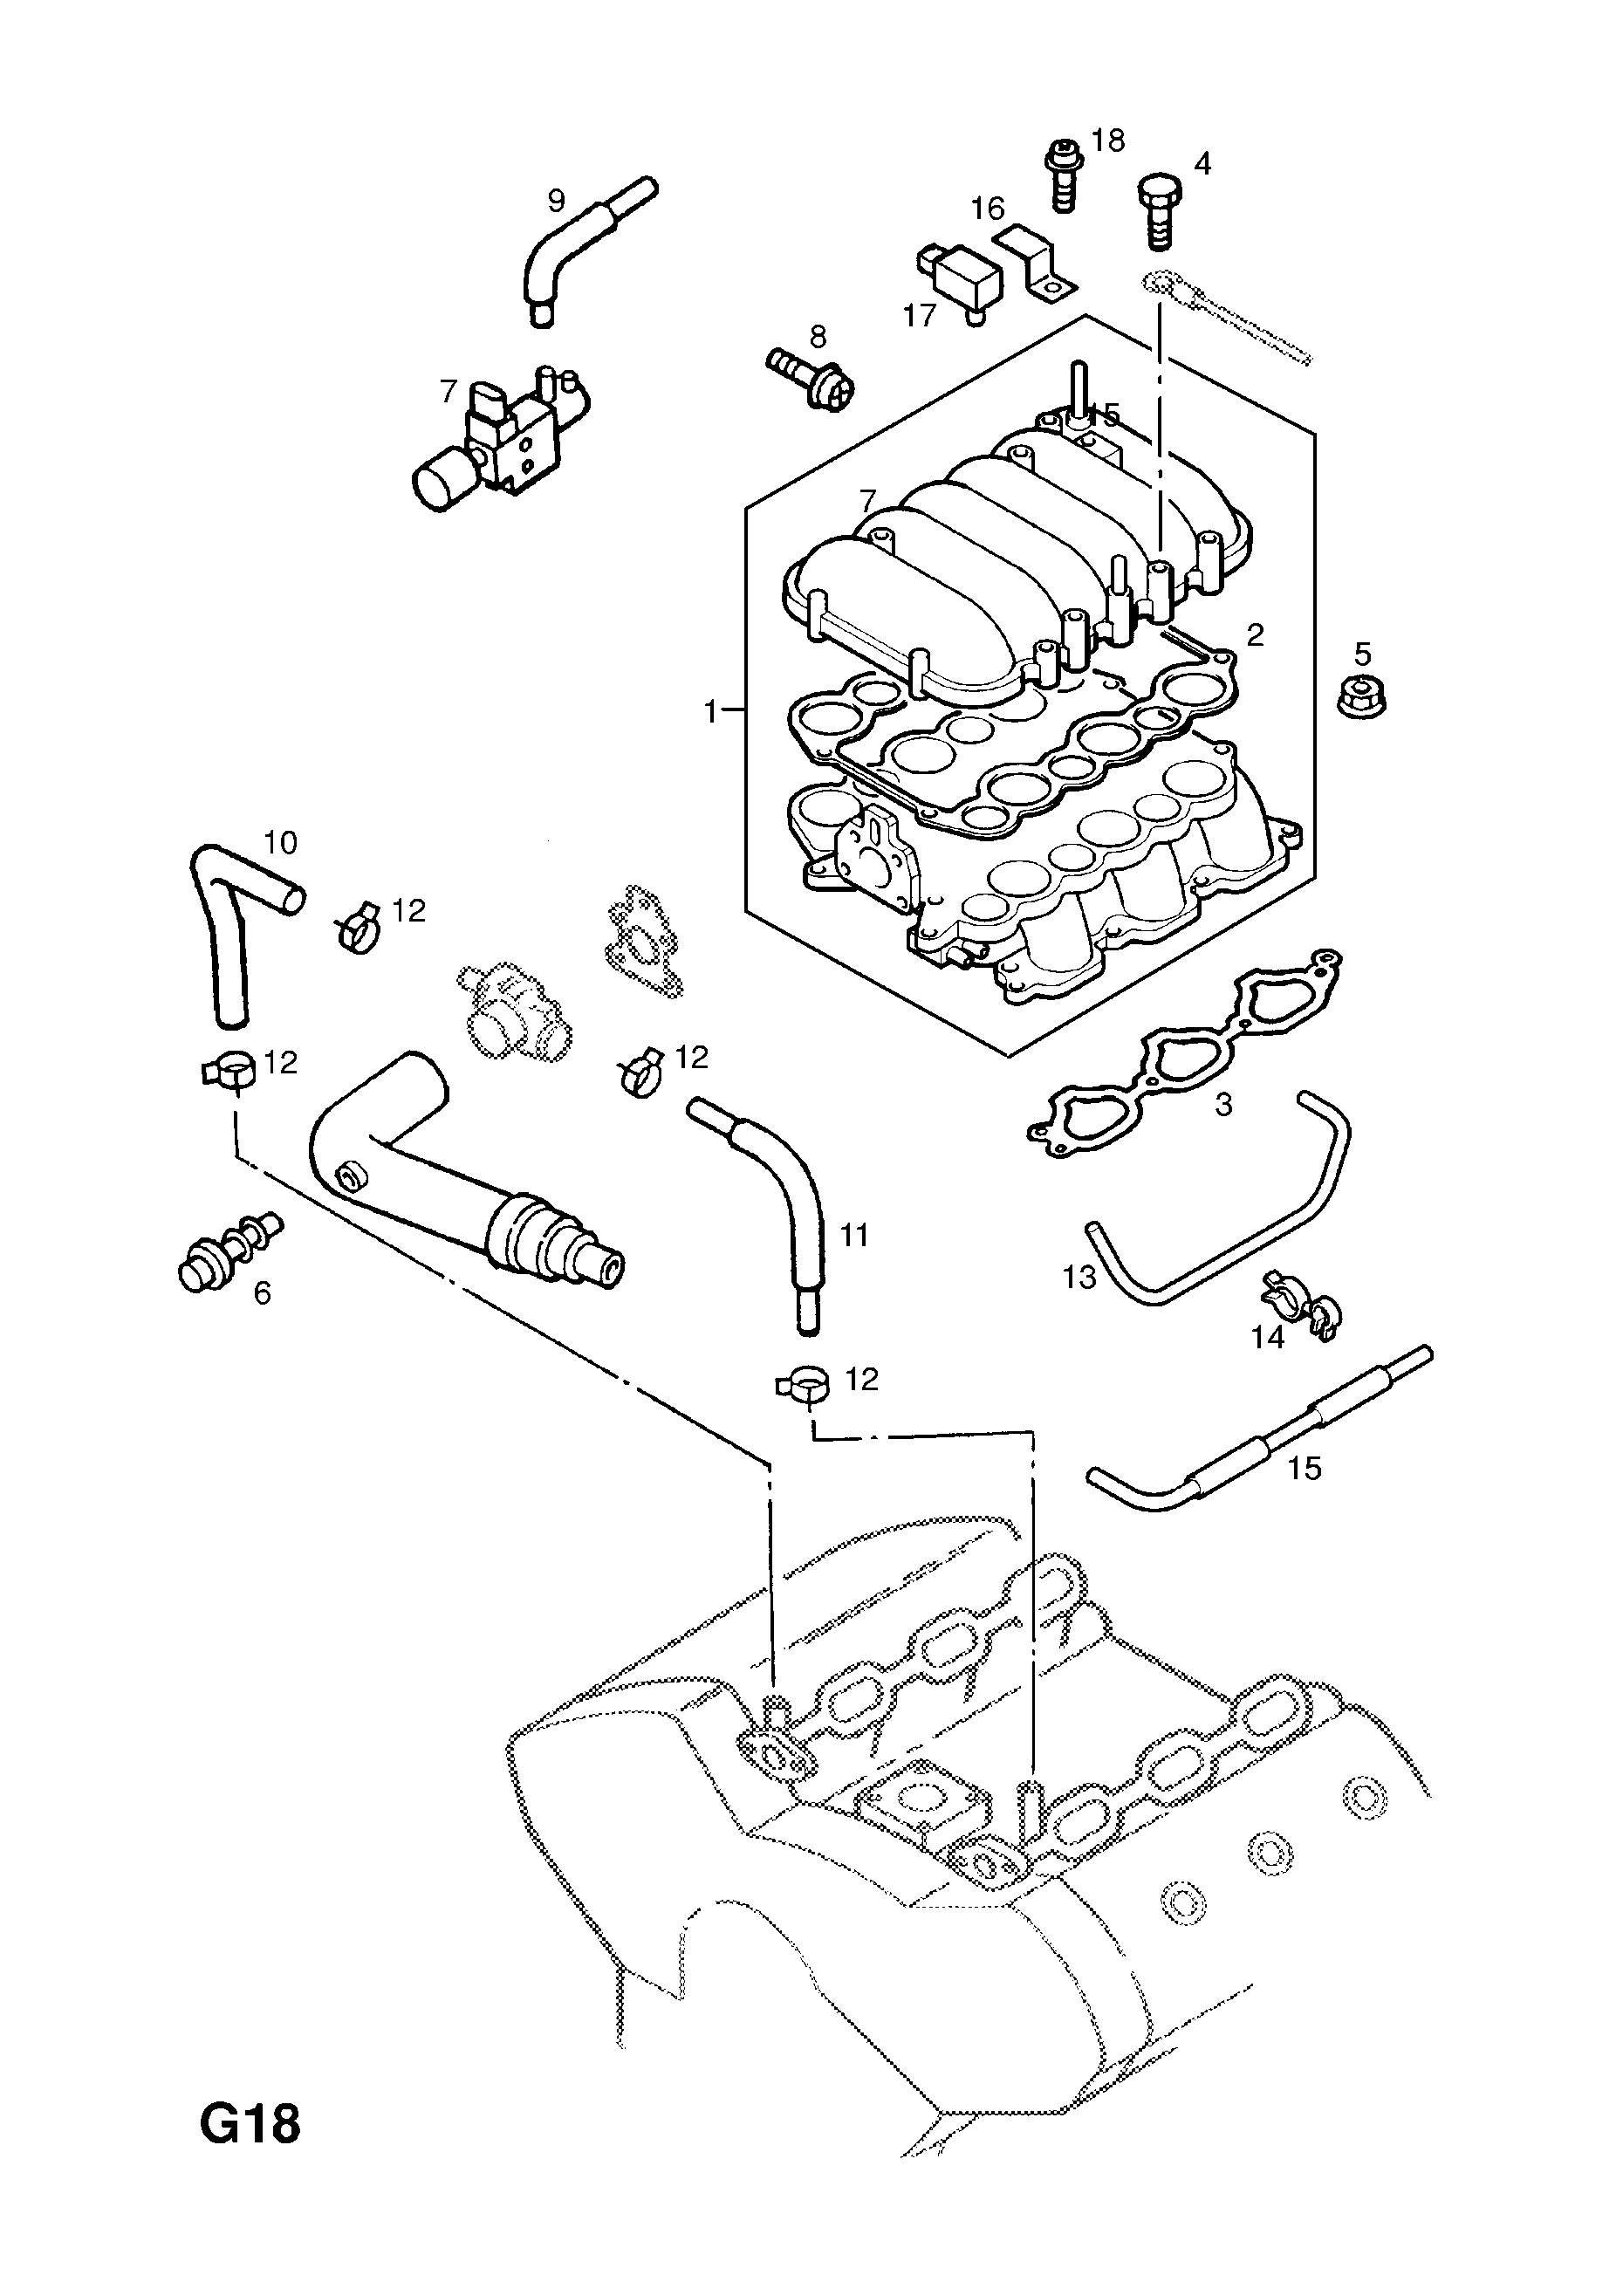 Opel Monterey Vacuum Diagram Electrical Wiring Diagrams Vauxhall 1998 2000 G Fuel And Exhaust 52 35 Petrol